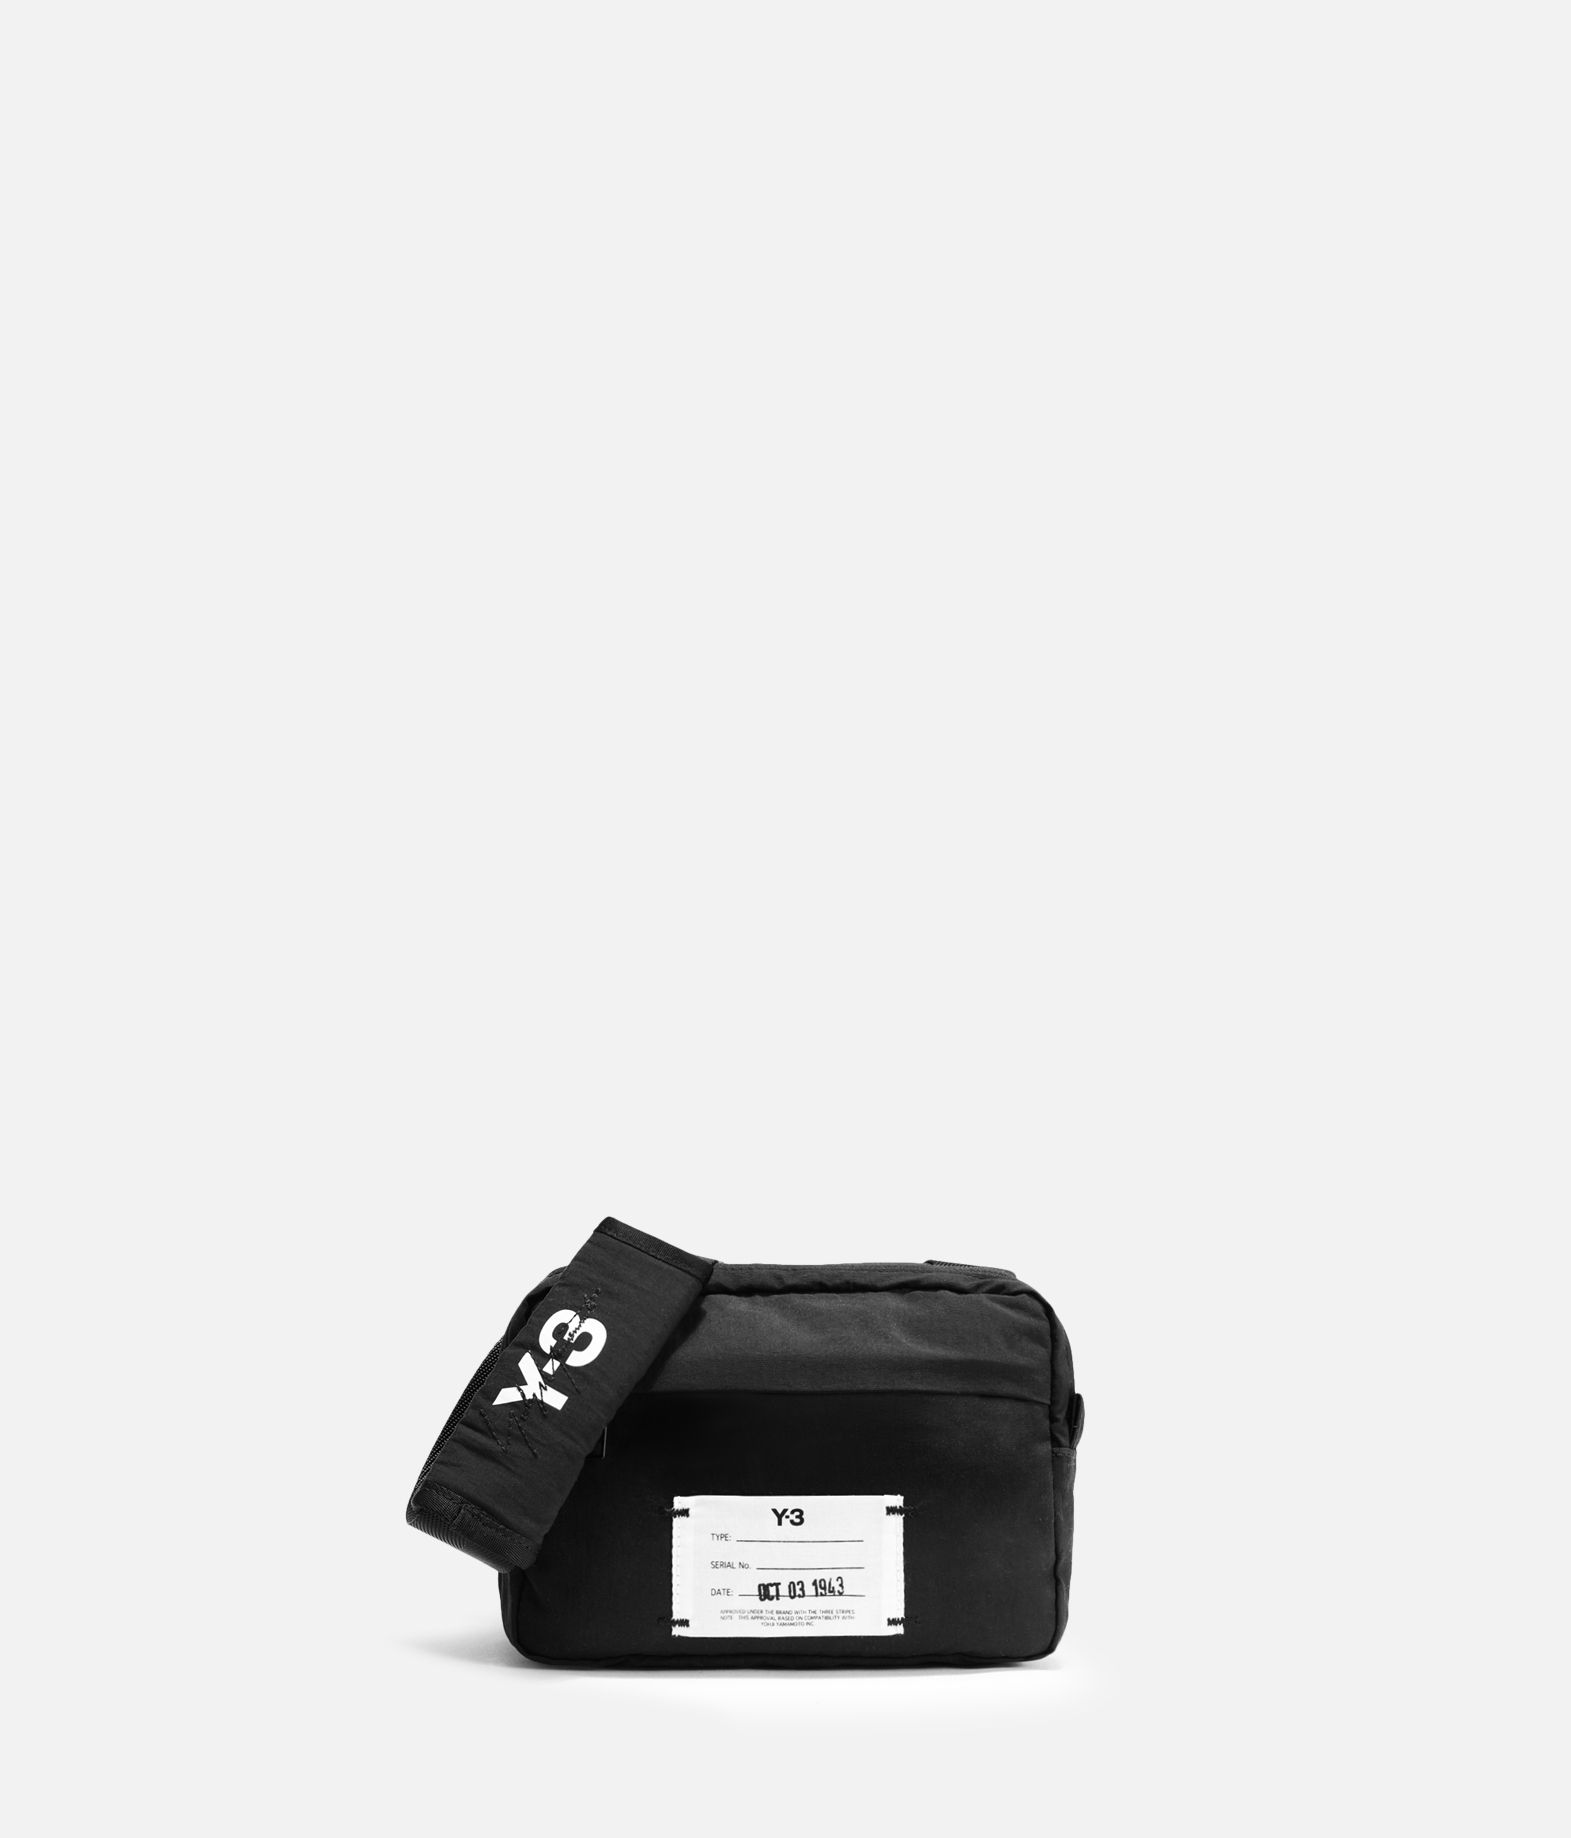 Y-3 Y-3 Multi Pocket Bag Borsa piccola in tessuto E f